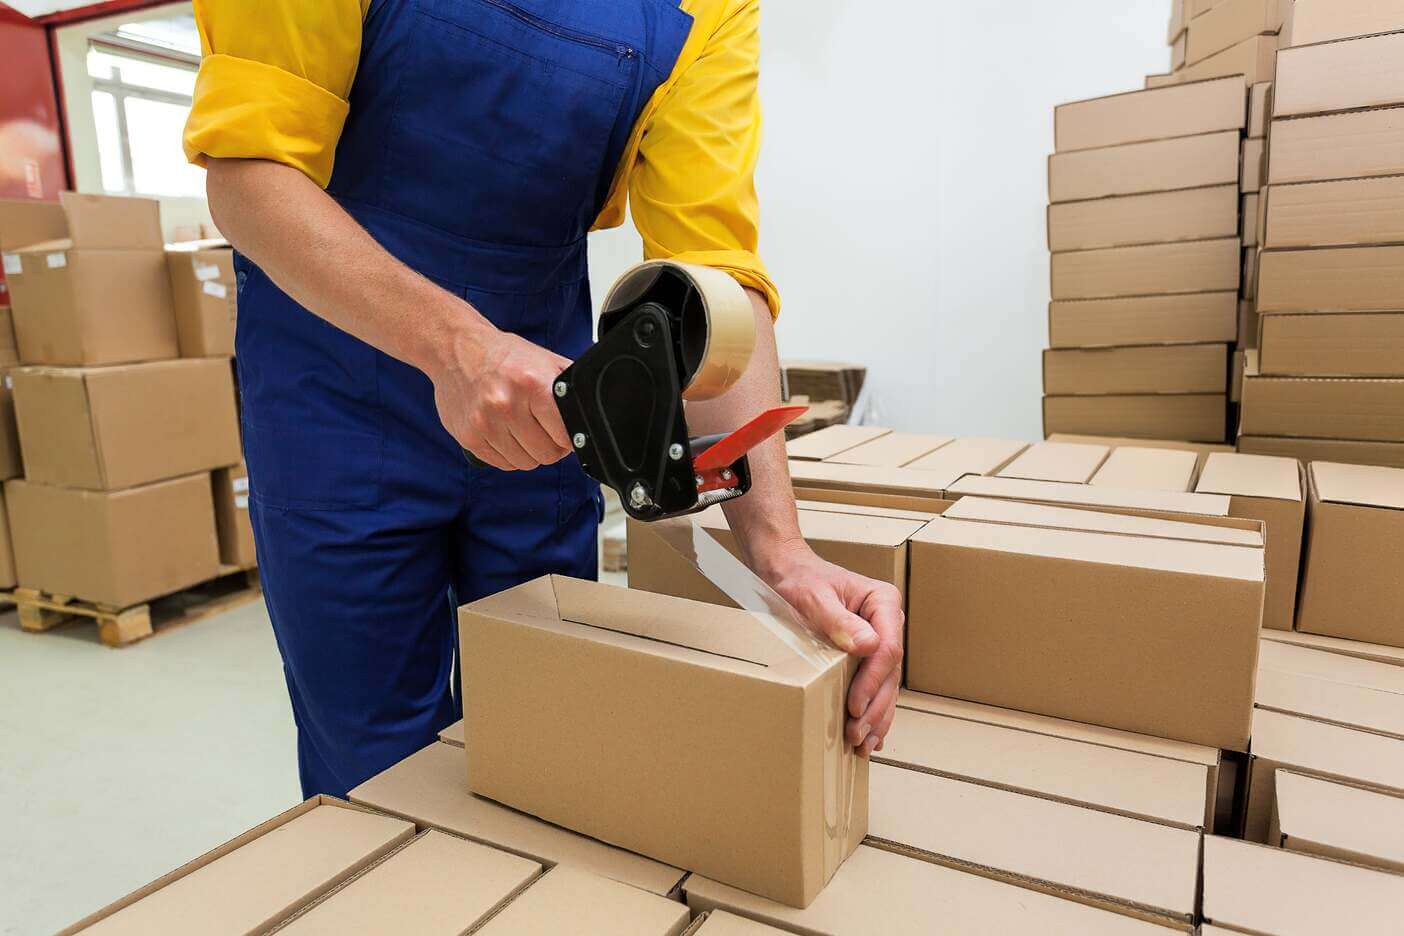 fulfillment service that stock pack ship or e-commerce customers